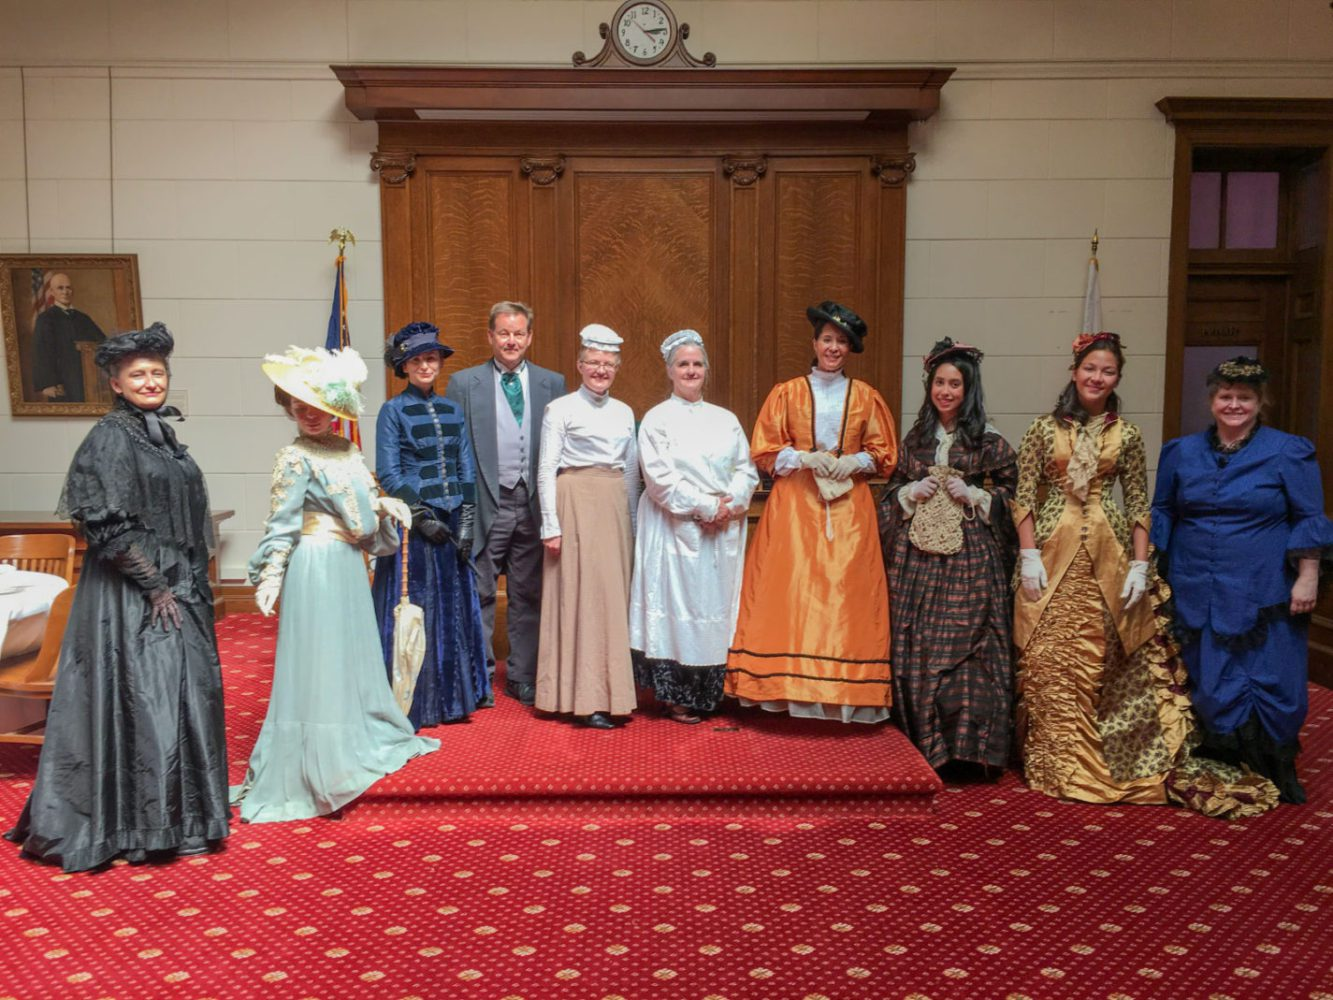 A group of people dressed in Victorian dress at San Mateo County History Museum